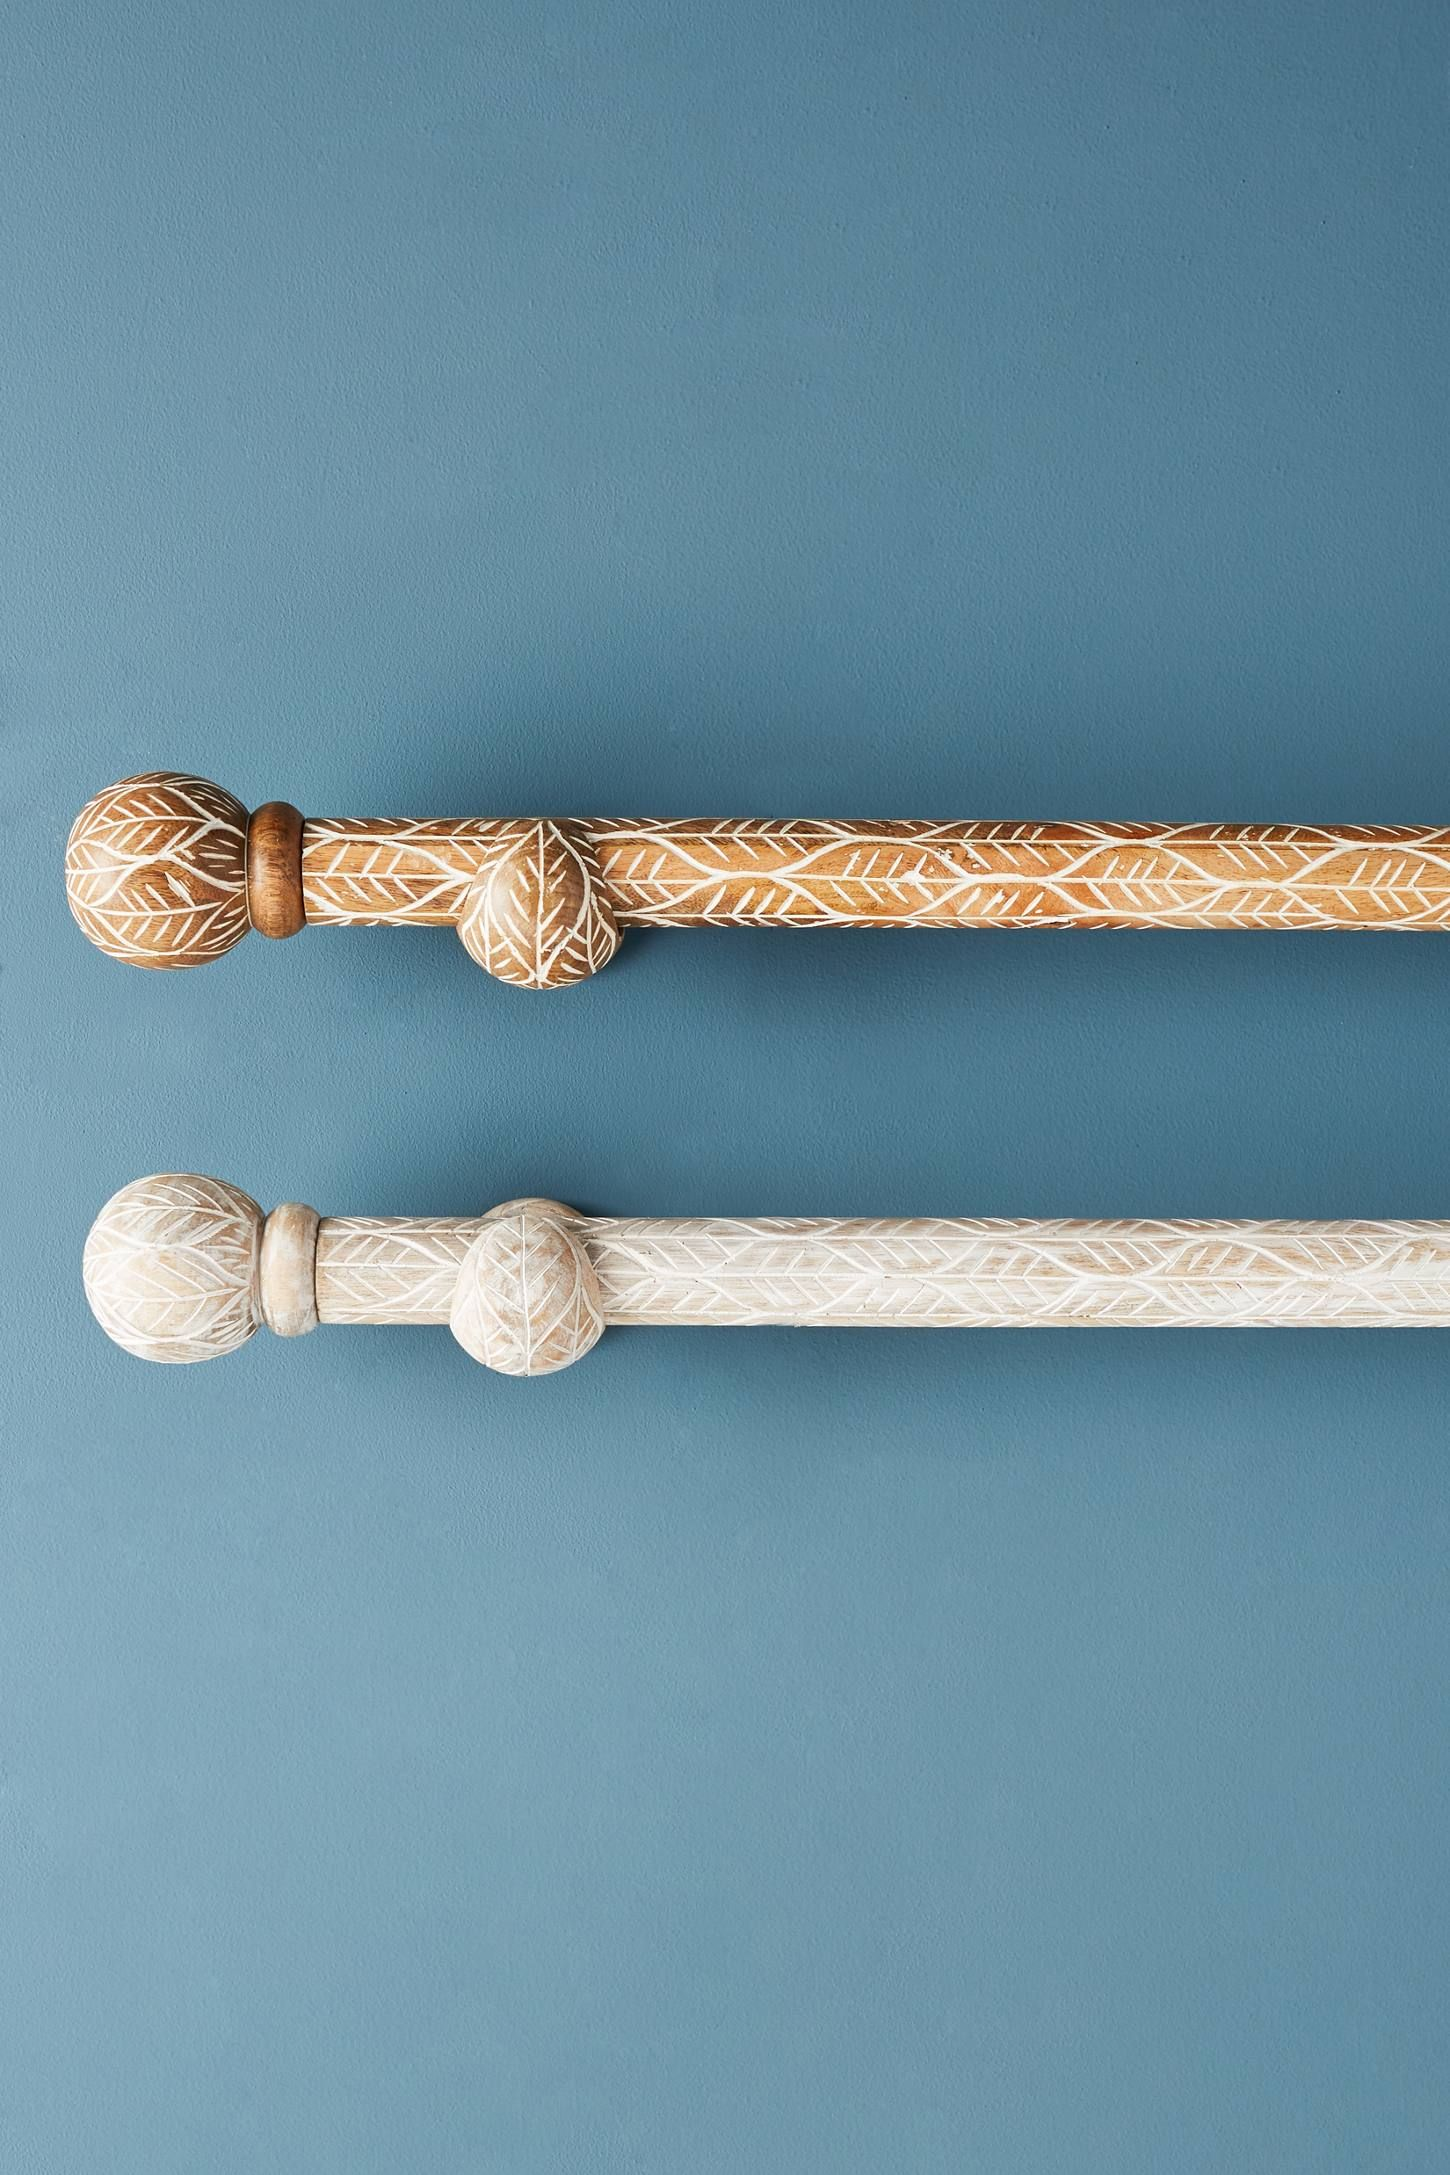 Twig Etched Curtain Rod Set Curtain Rods Rod Set Wood Curtain Rods